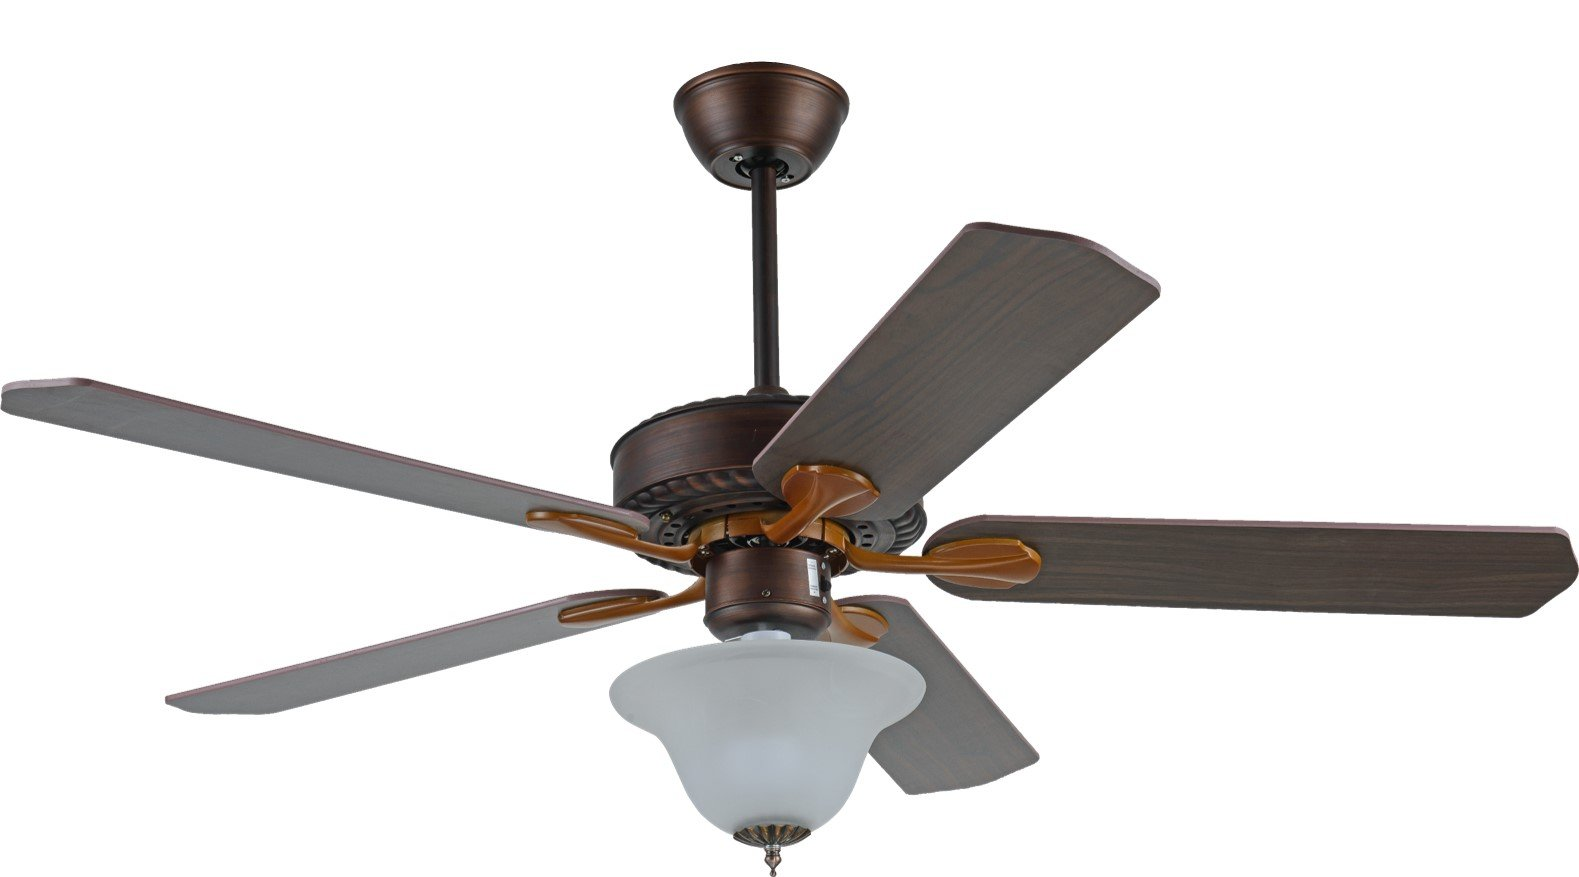 Induxpert Ceiling Fan with Lights | 3 Speed Remote Controlled 52 Inch Reversible Mounted Fan | Frost Glass Light Fixtures